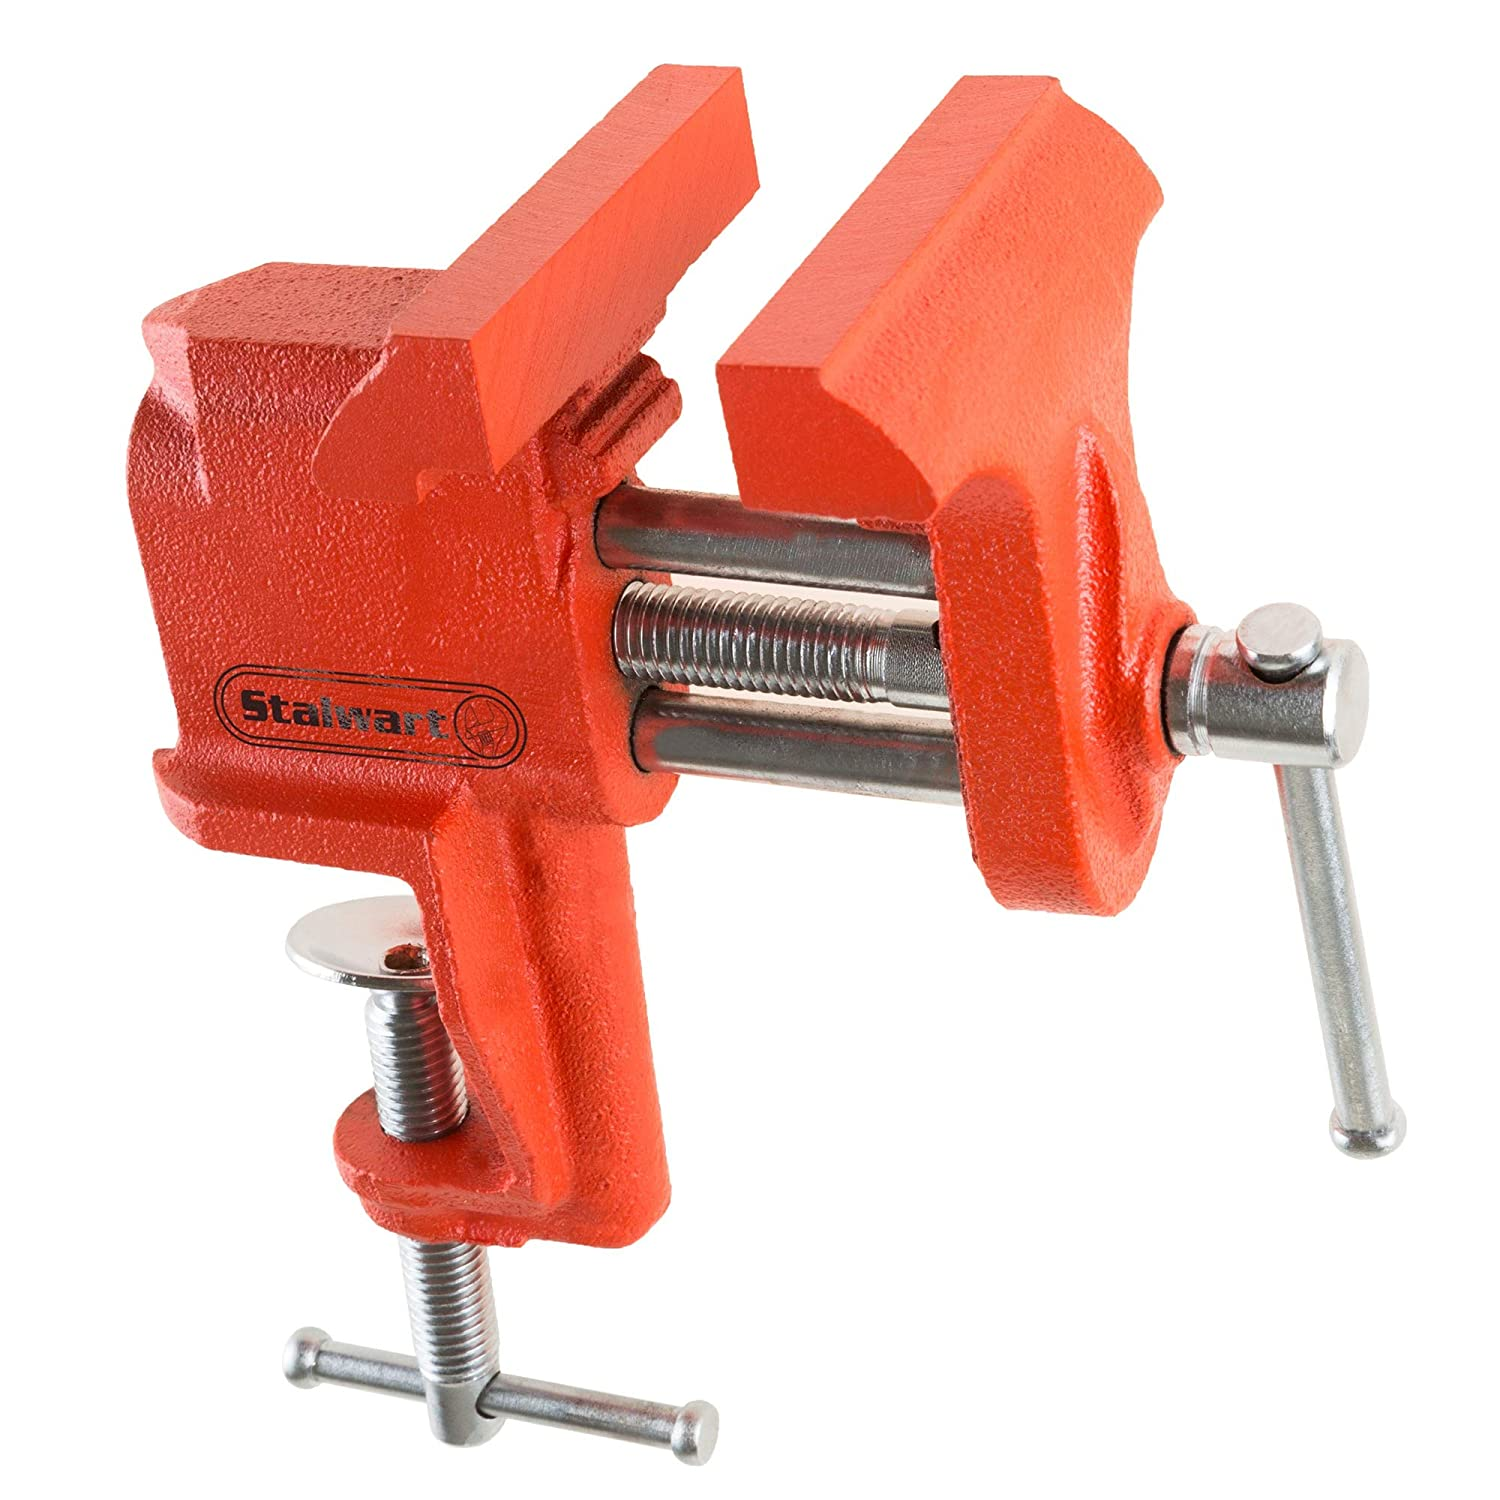 Stalwart Vice Workshop Bench Clamp - Heavy Duty Bolt Down Locking Swivel Base with Anvil for Auto Repair, Woodworking, Pipe Work, Gunsmith Trademark Global 75-ST6023